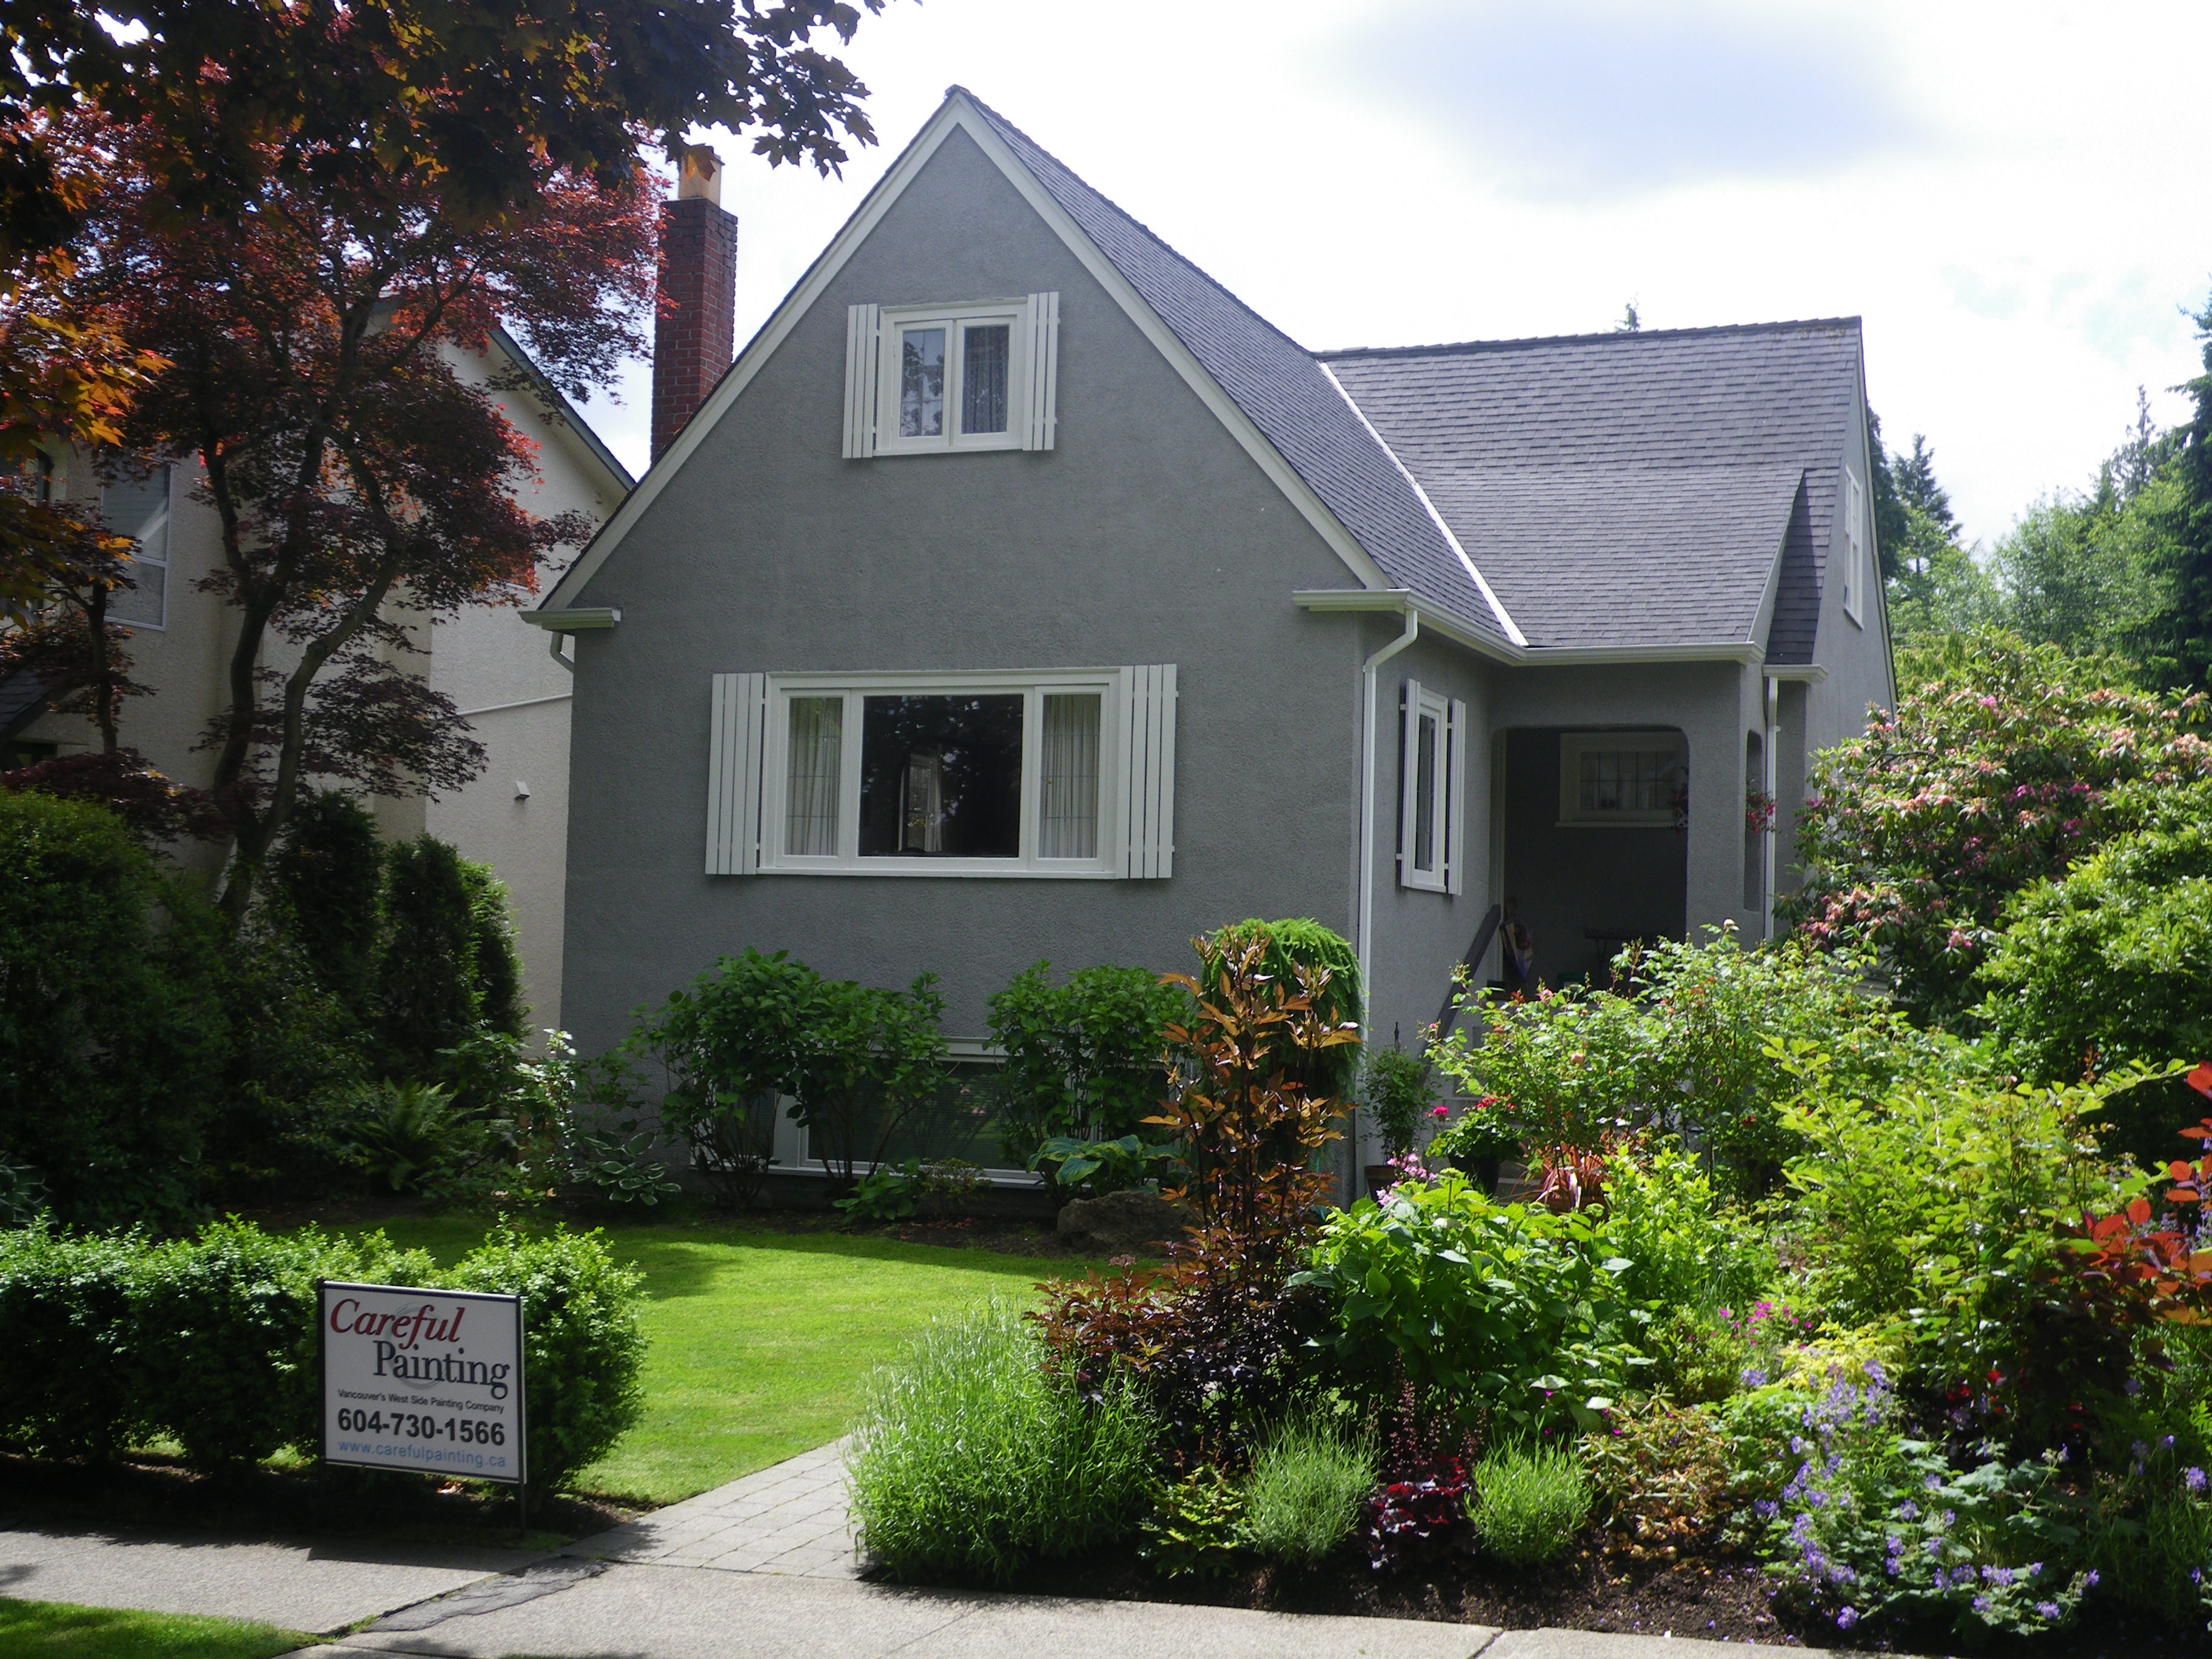 Painting Vancouver Painter Painters House Painting Careful Painting Vancouver Part 2